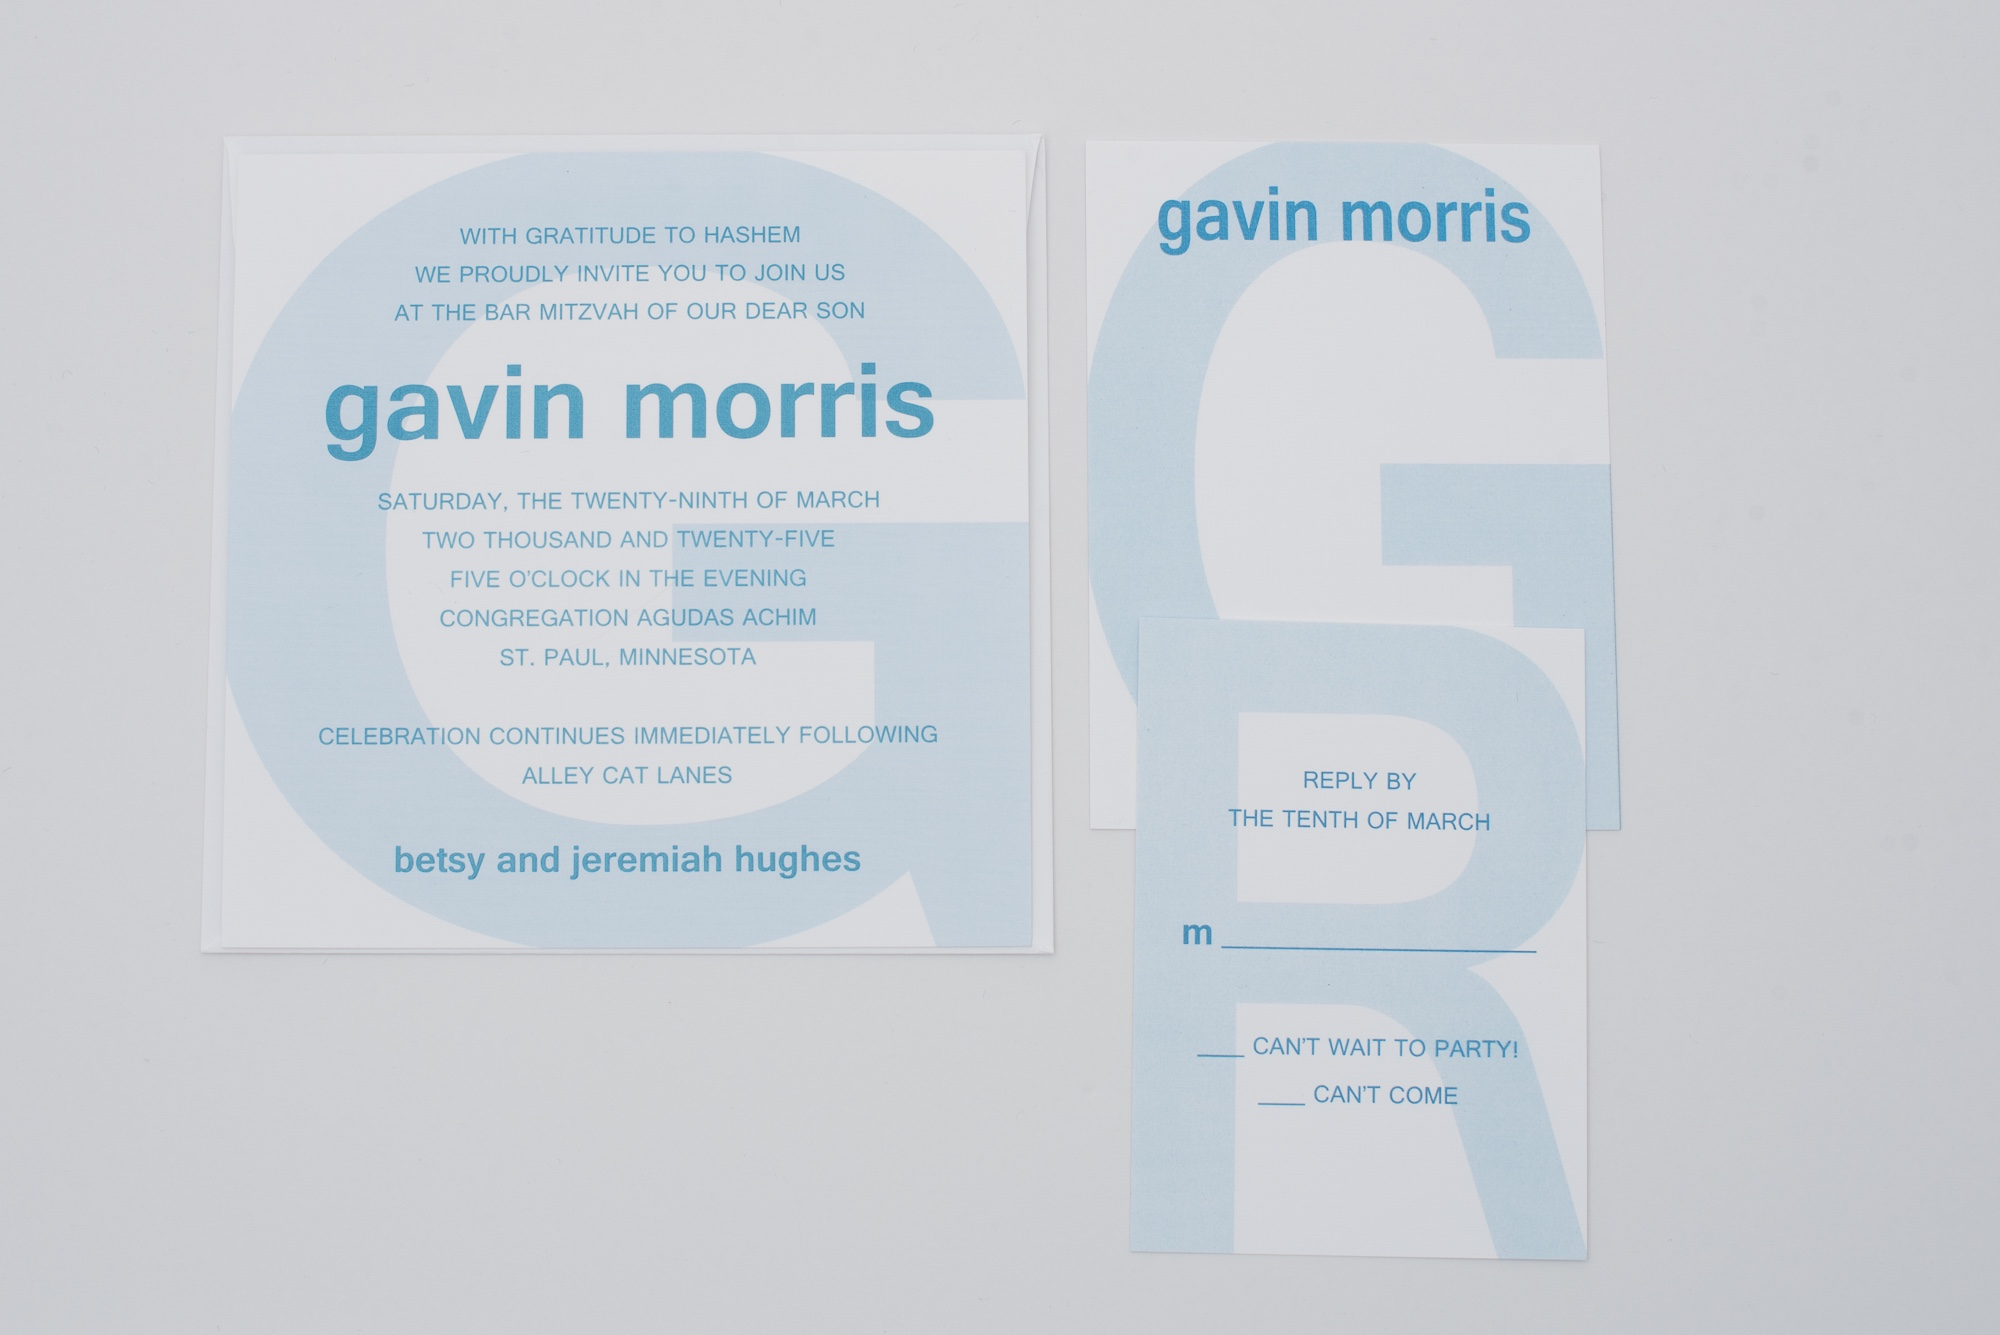 Large monogram letters in the background are the feature of this modern bar mitzvah invitation.